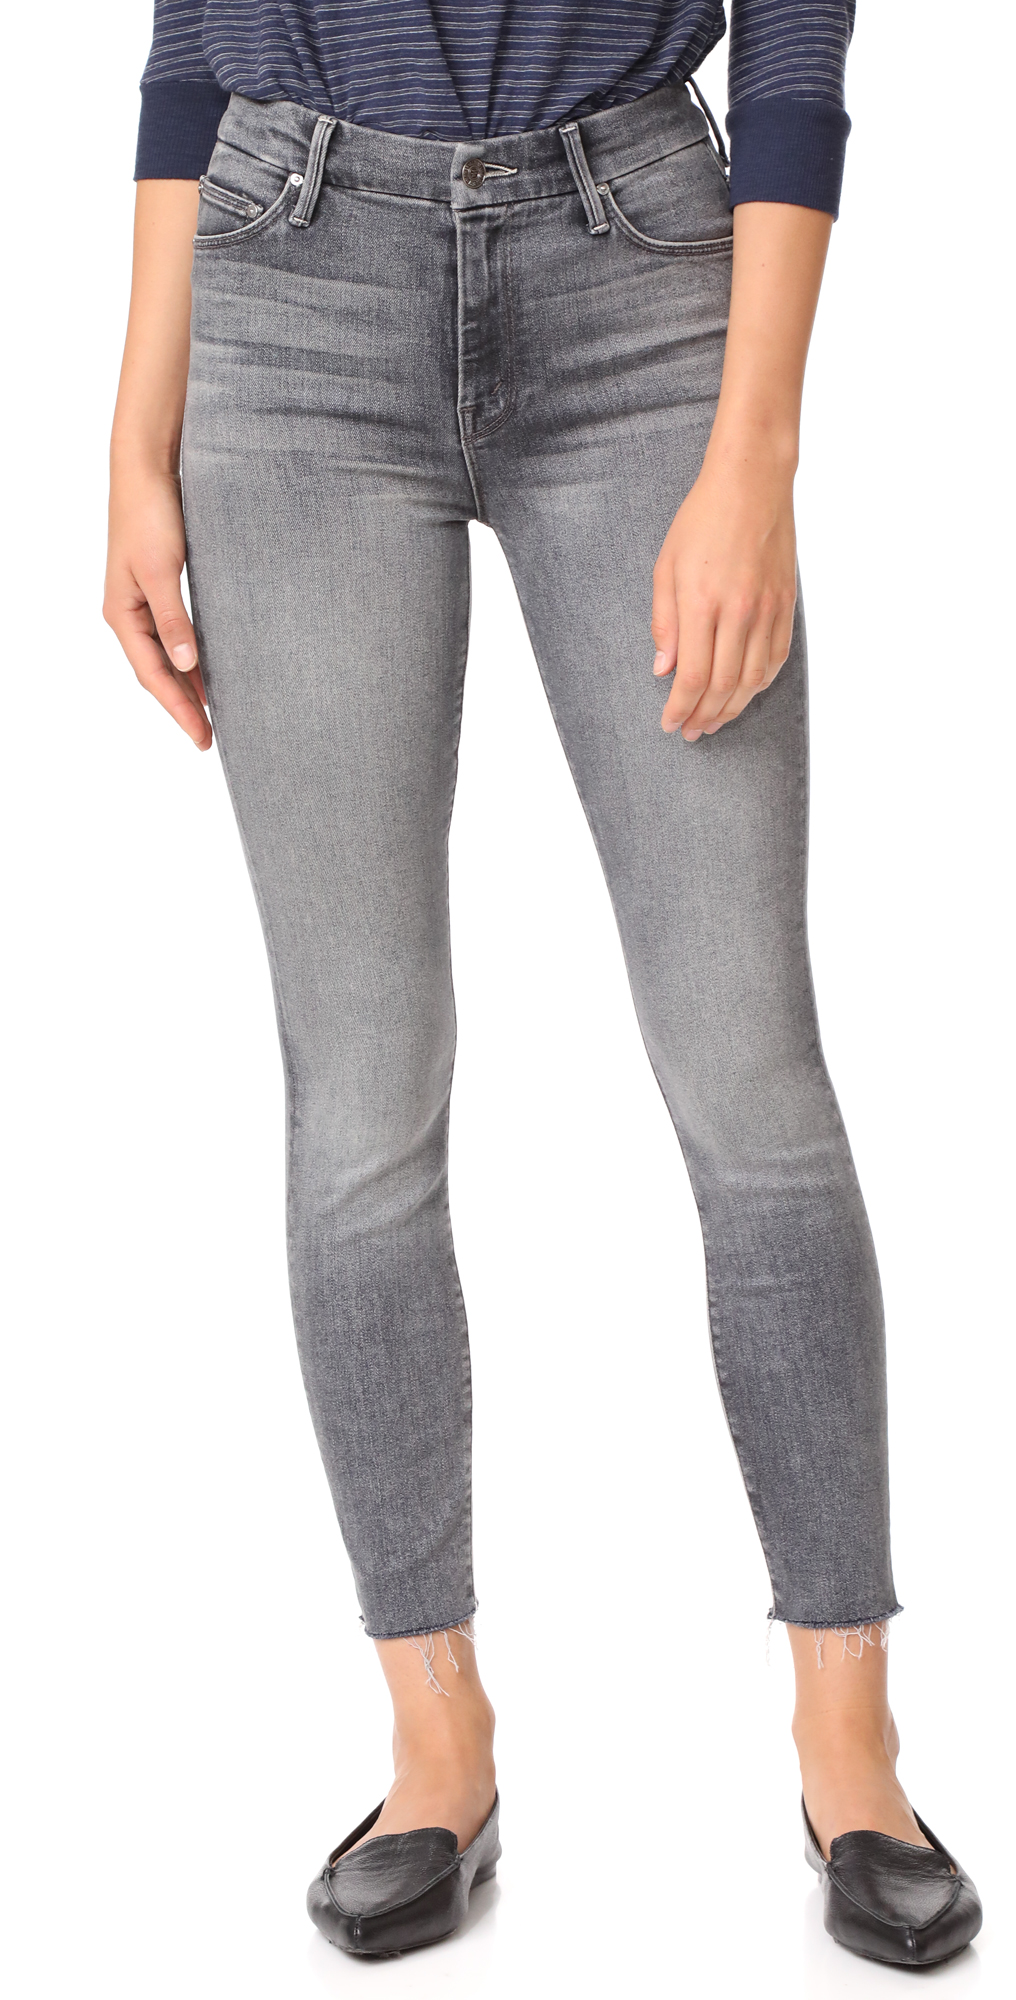 High Waist Looker Ankle Fray Jeans MOTHER